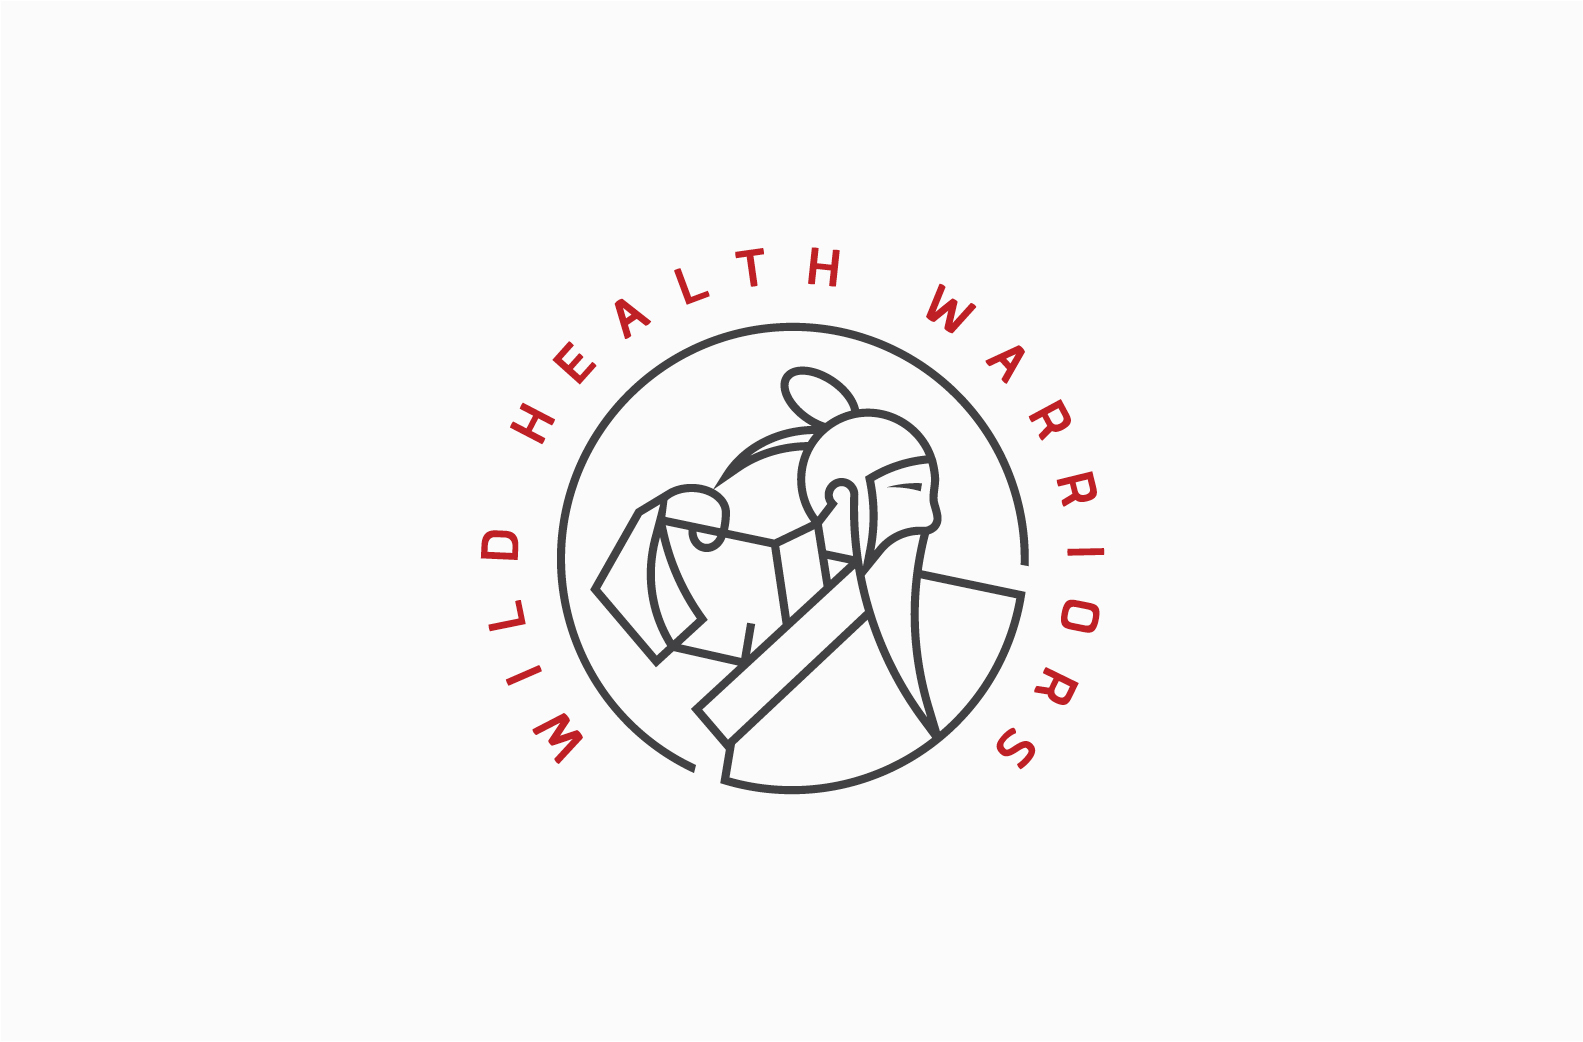 logo design for Welsh health supllements producer